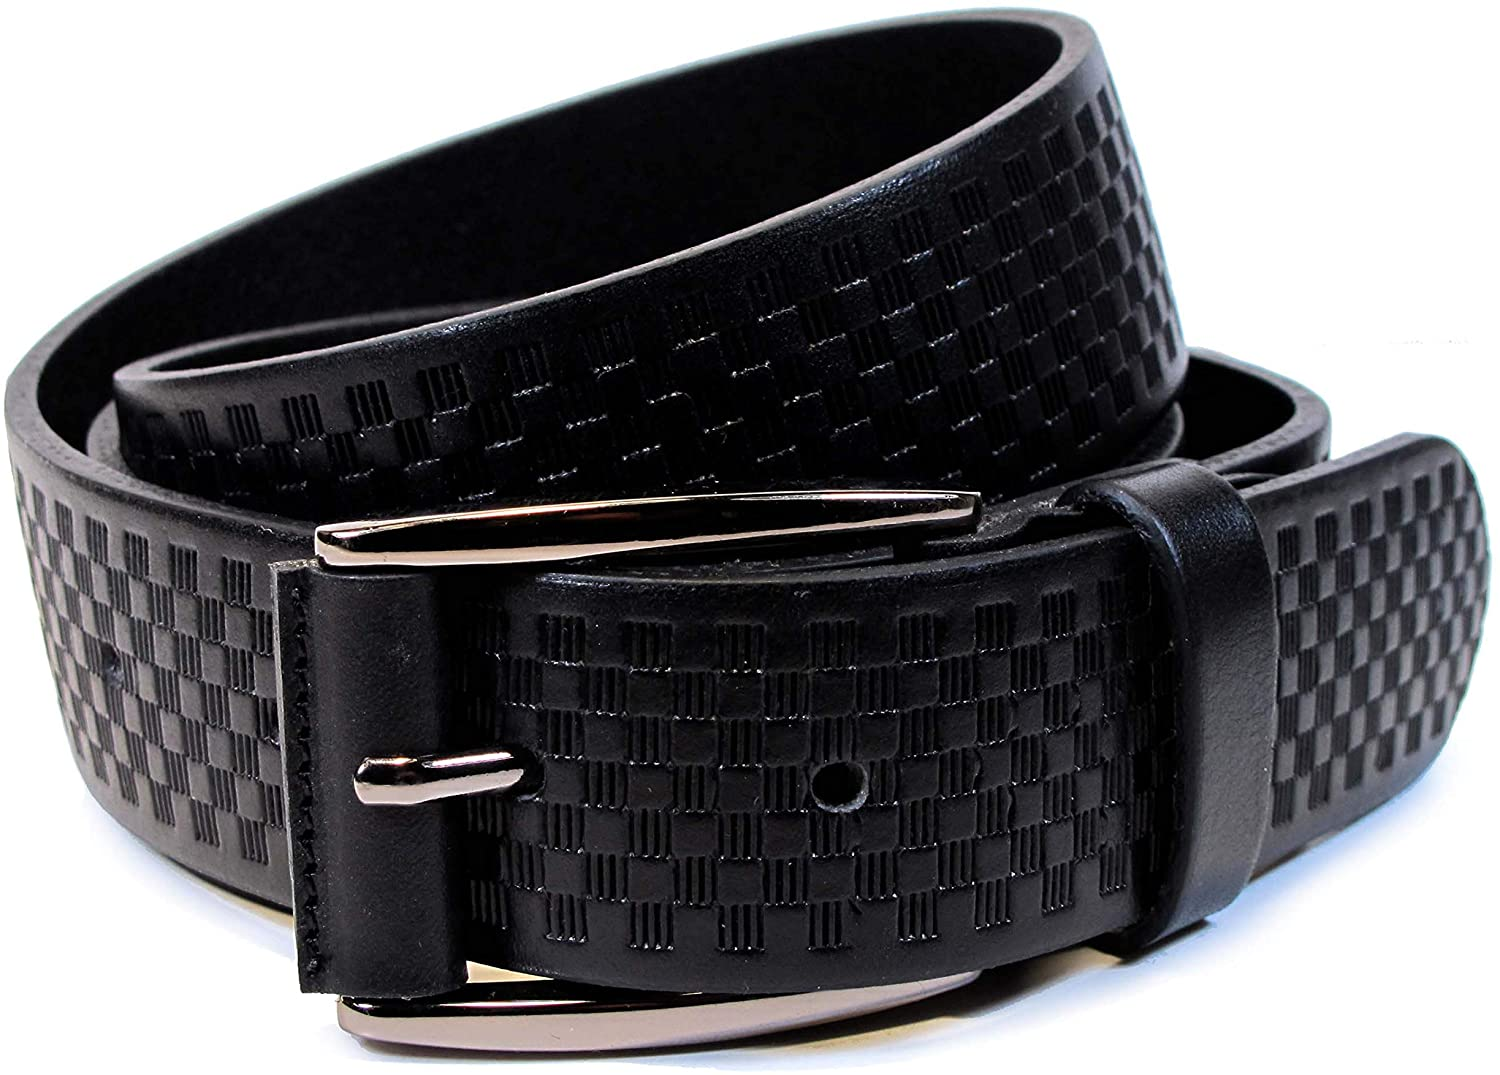 CW7 Womens Real Genuine Leather Black Belt 1.25 Wide S-XL Thick Long Casual Jeans